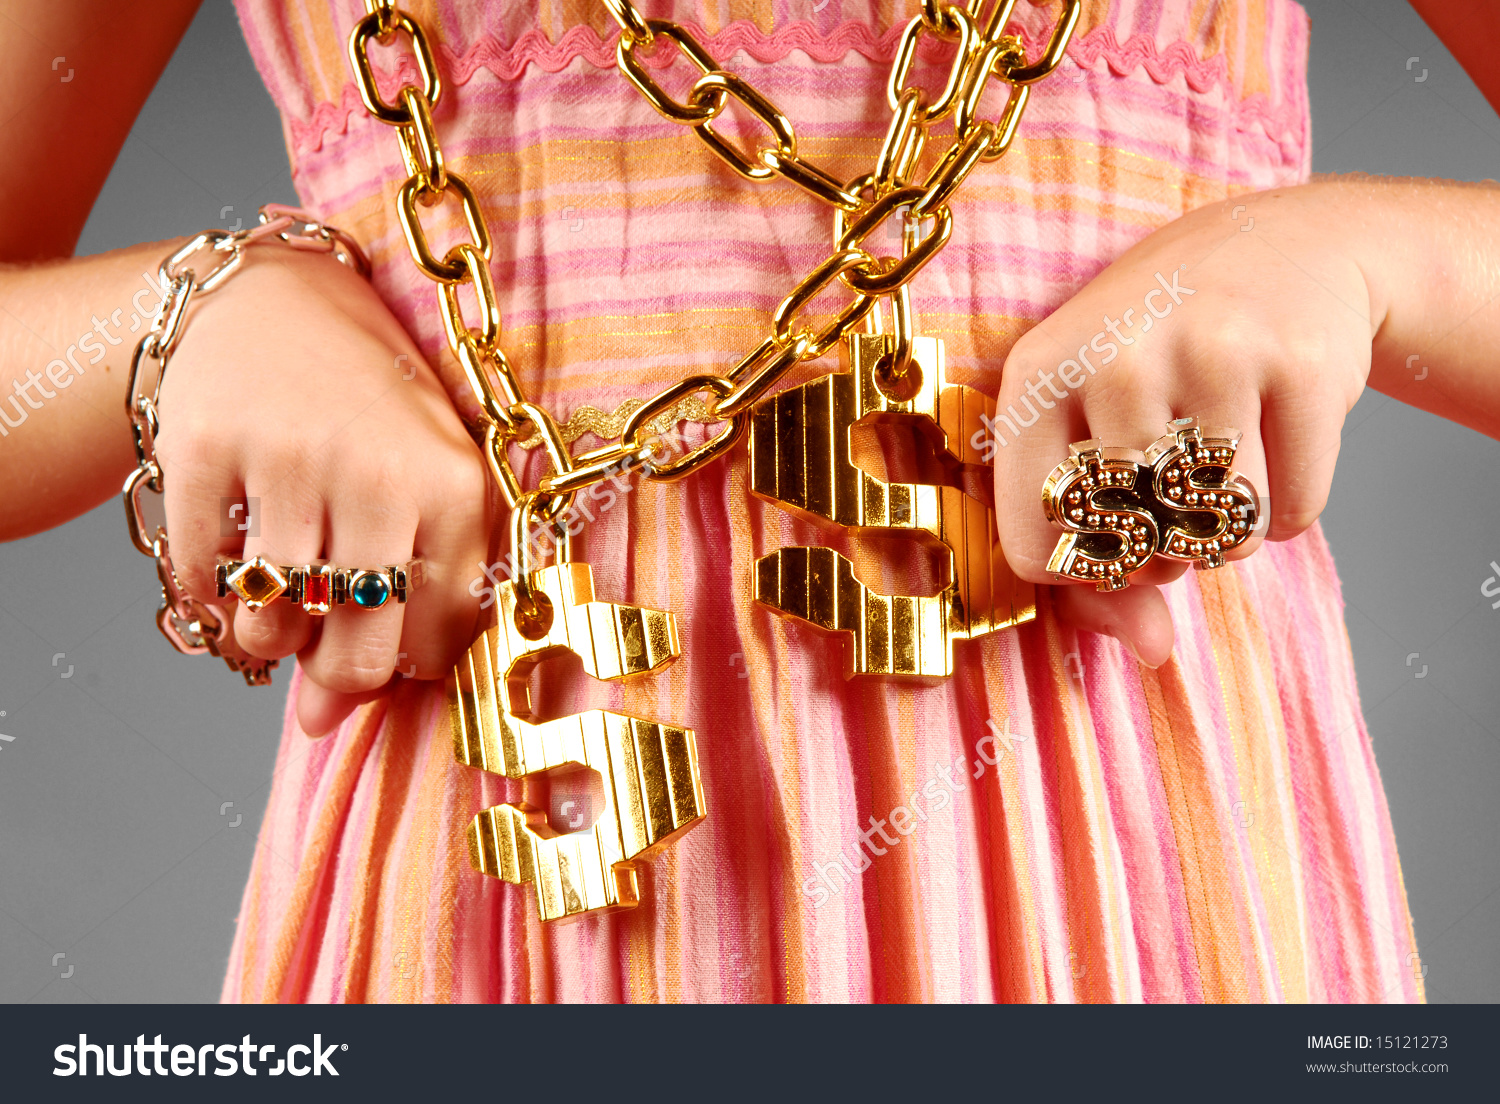 Young Girl Wearing Gaudy Hip Hop Stock Photo 15121273.